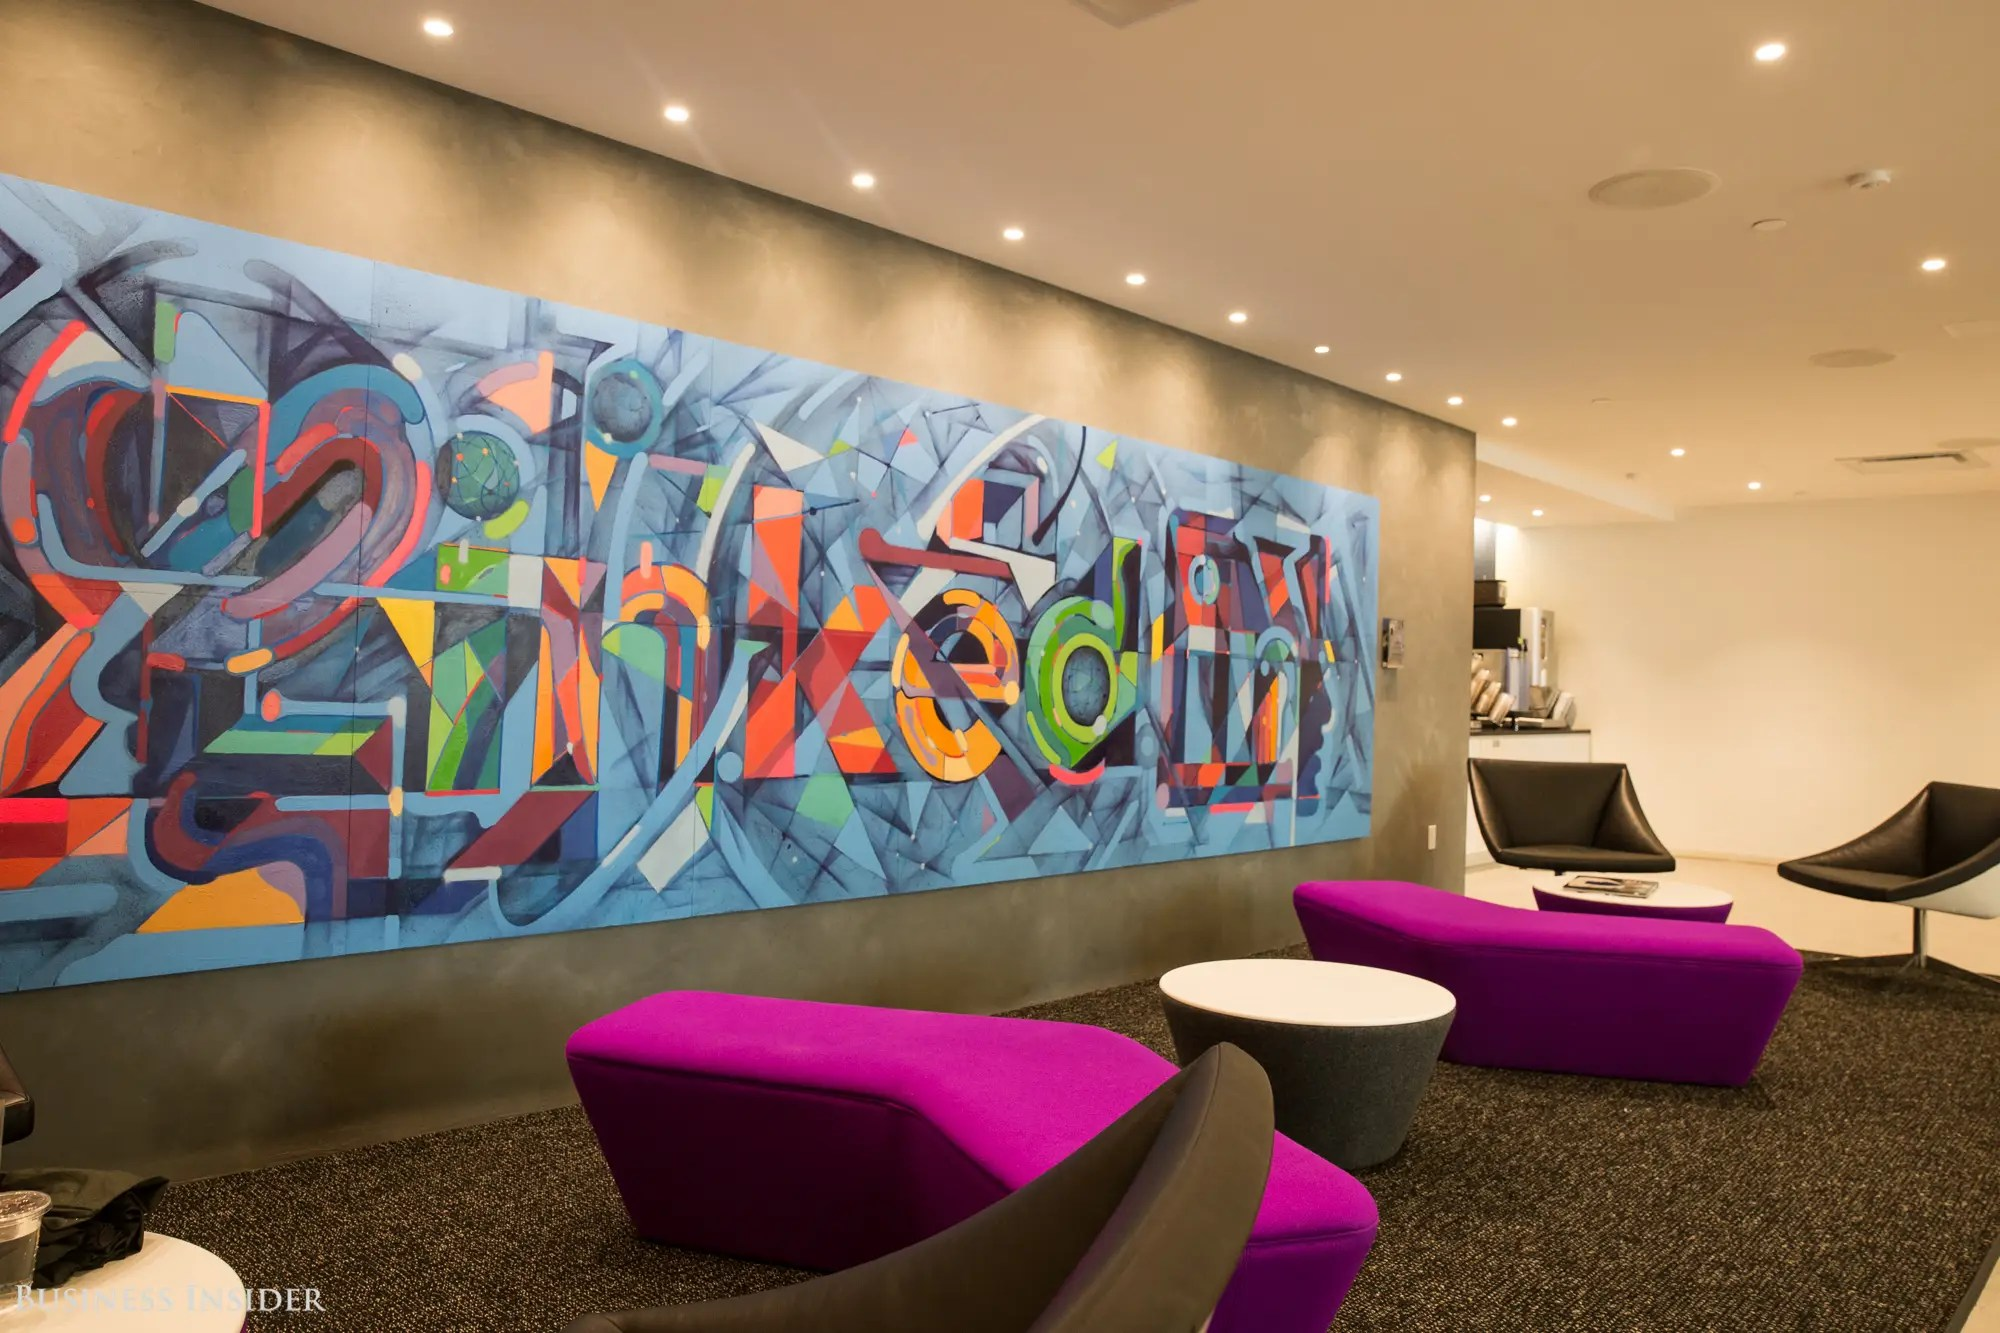 We waited for our tour guides in LinkedIn's colorful reception area, which has books and a coffee station for employees and visitors.